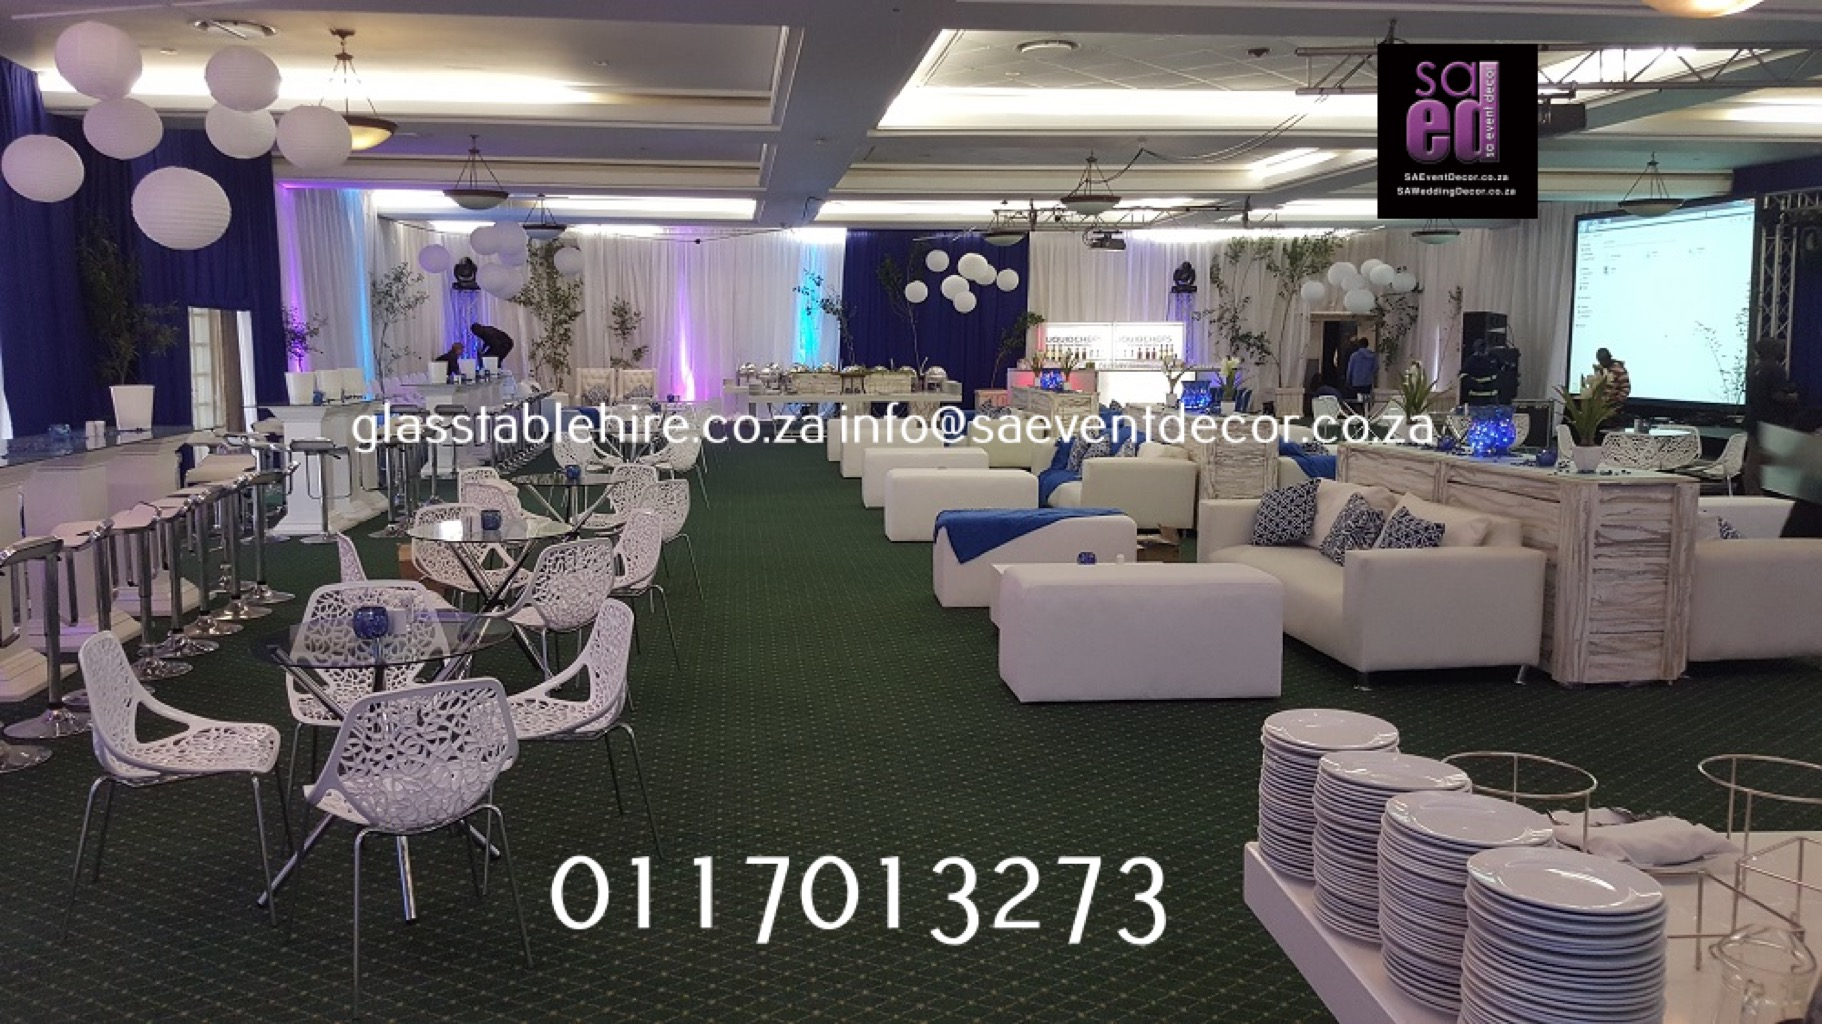 Indaba Hotel - All White Lounge Cocktail Events Furniture Hire